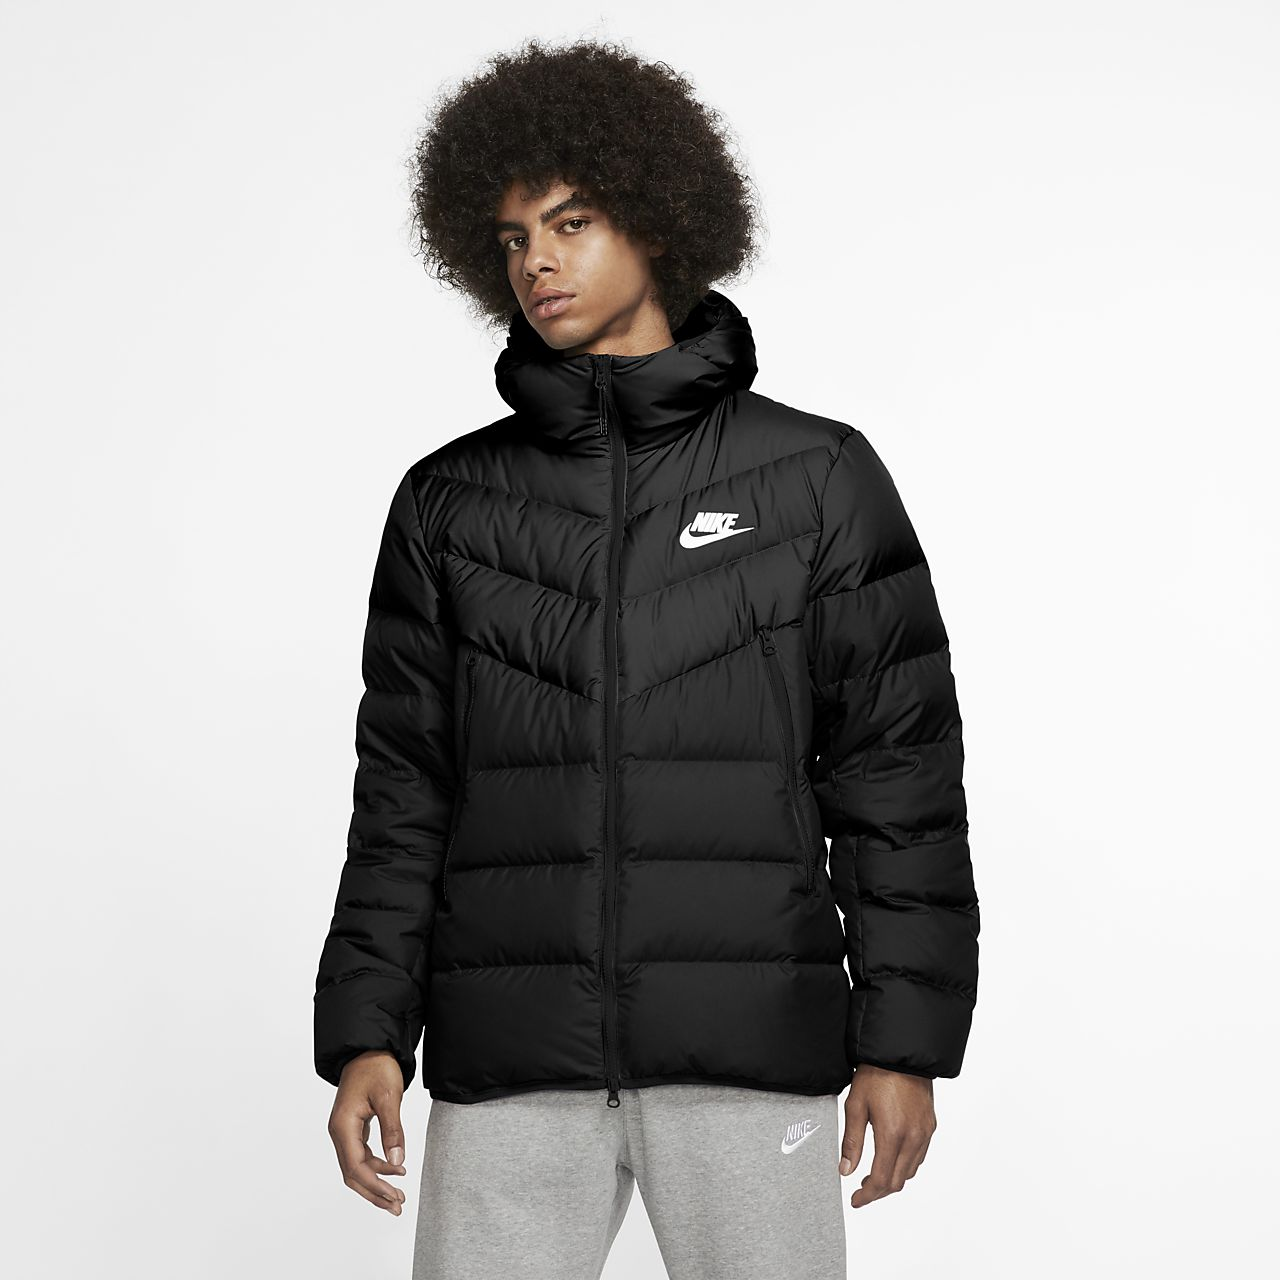 89c46e0404e4 Nike Sportswear Windrunner Down-Fill Men s Hooded Jacket. Nike.com CA